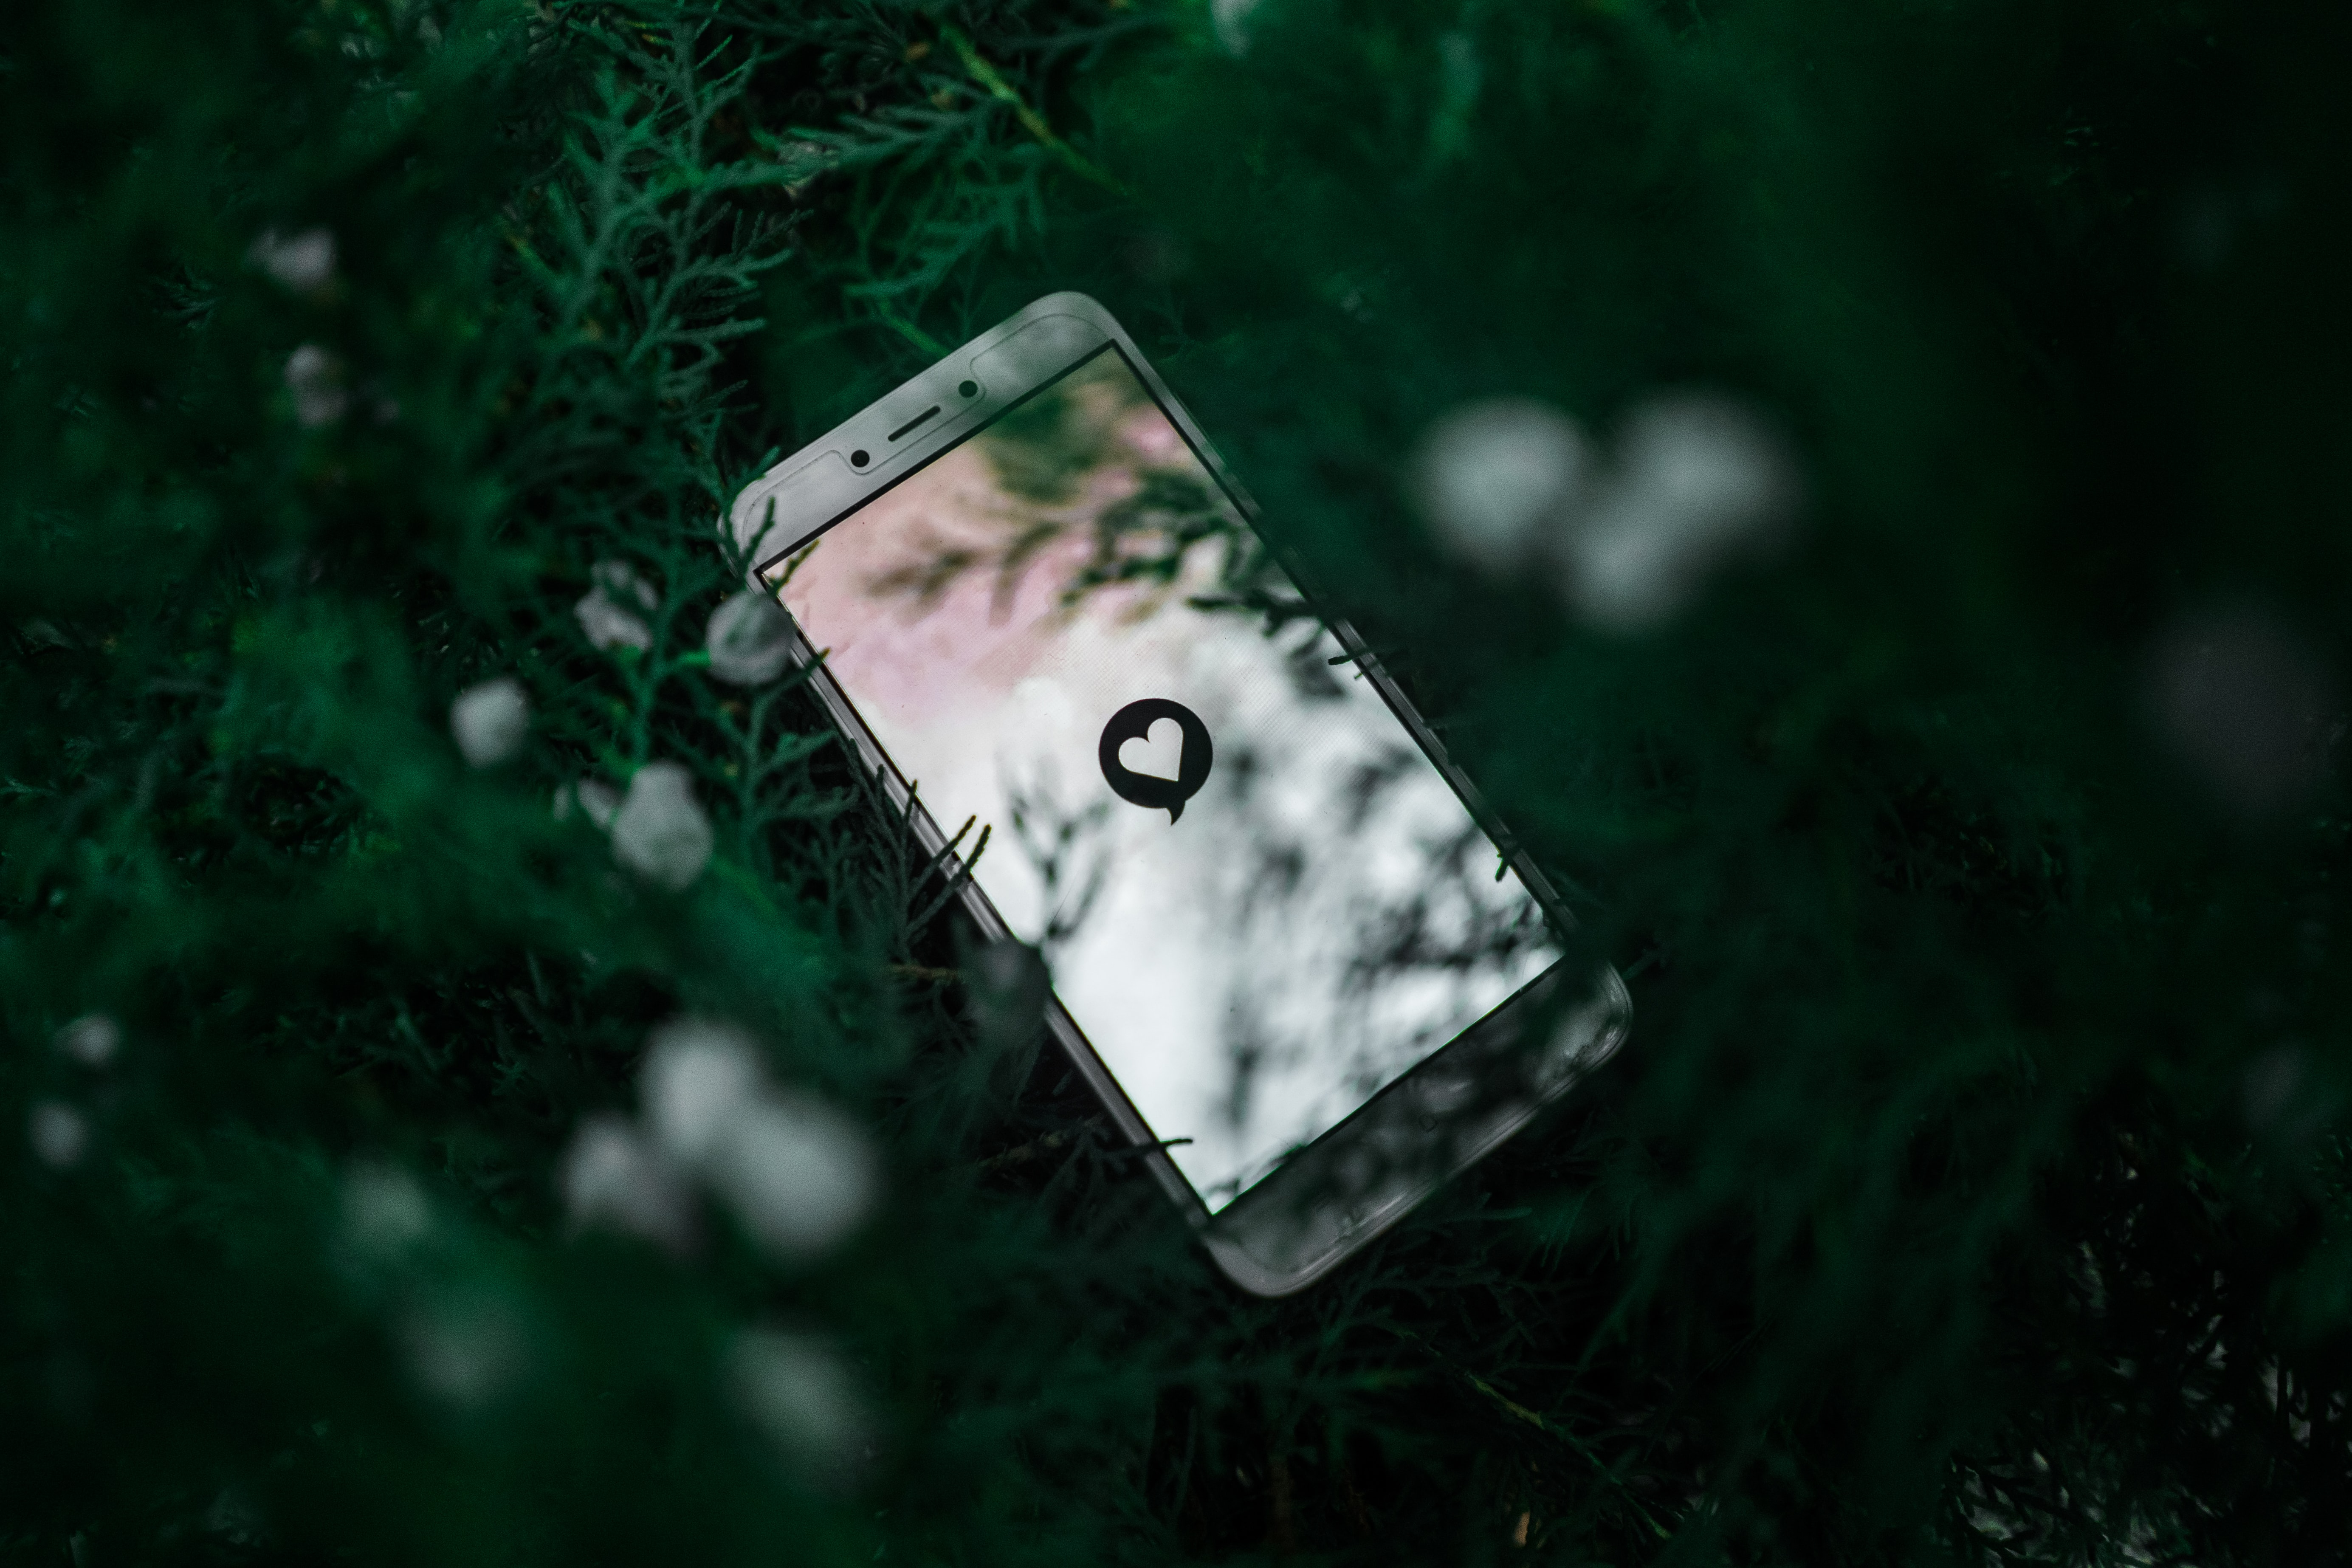 Cellphone in green bush, screen showing comment bubble with heart in it; image by Pratik Gupta, via Unsplash.com.